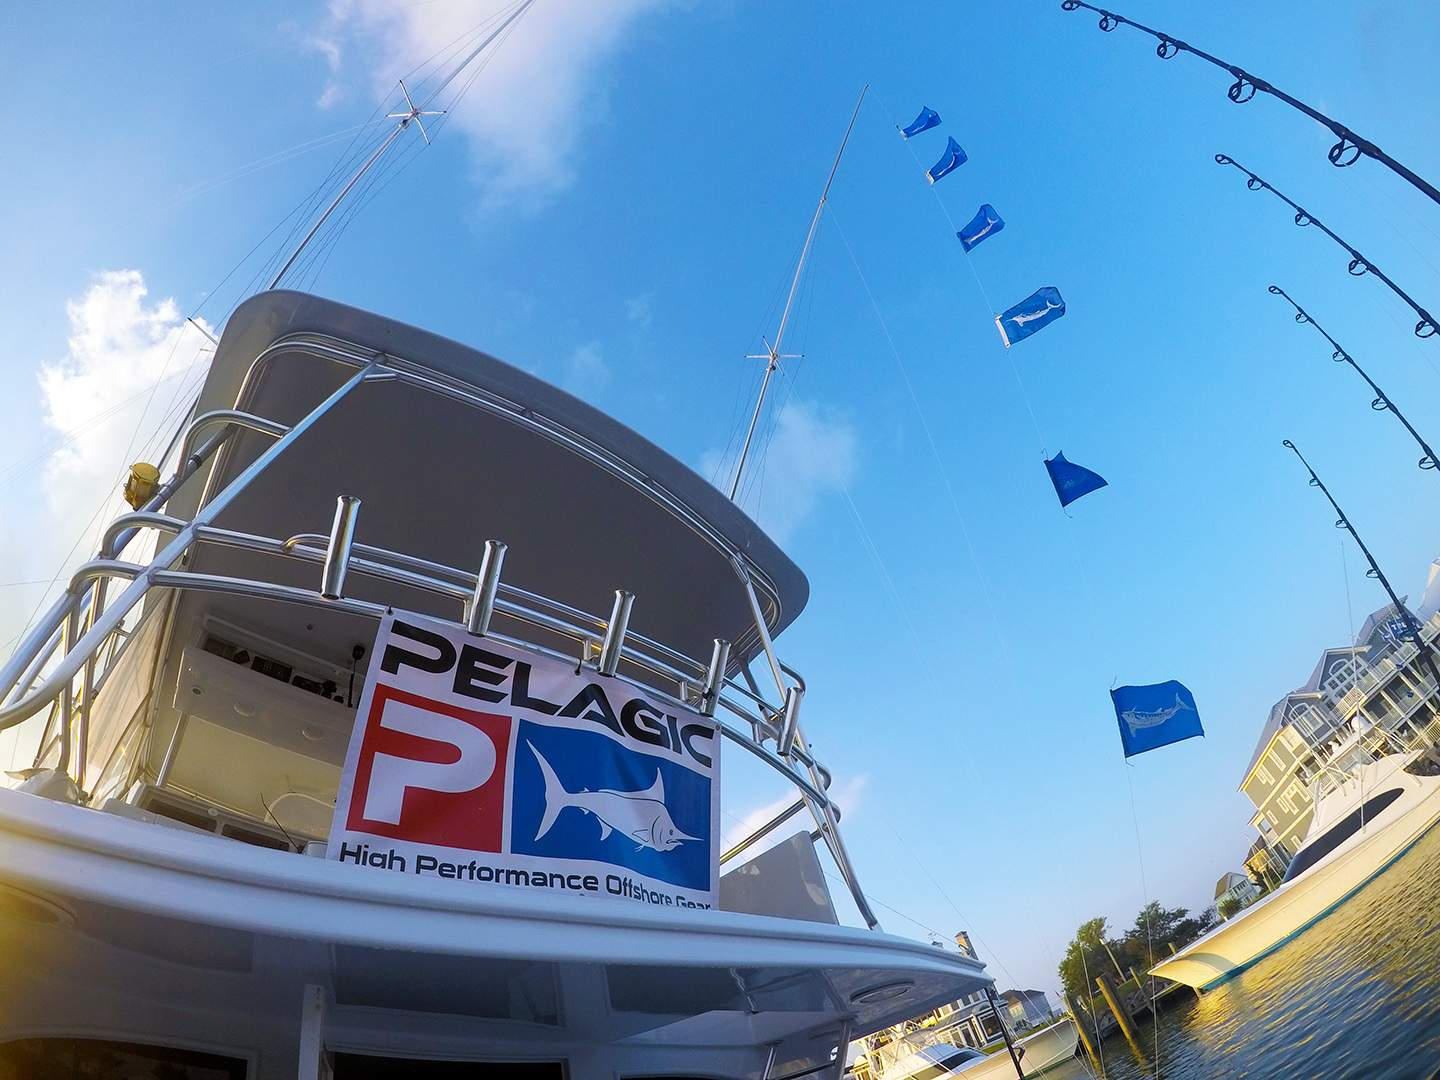 Pelagic White Marlin Open 2018 Flags Flying Fin Planner